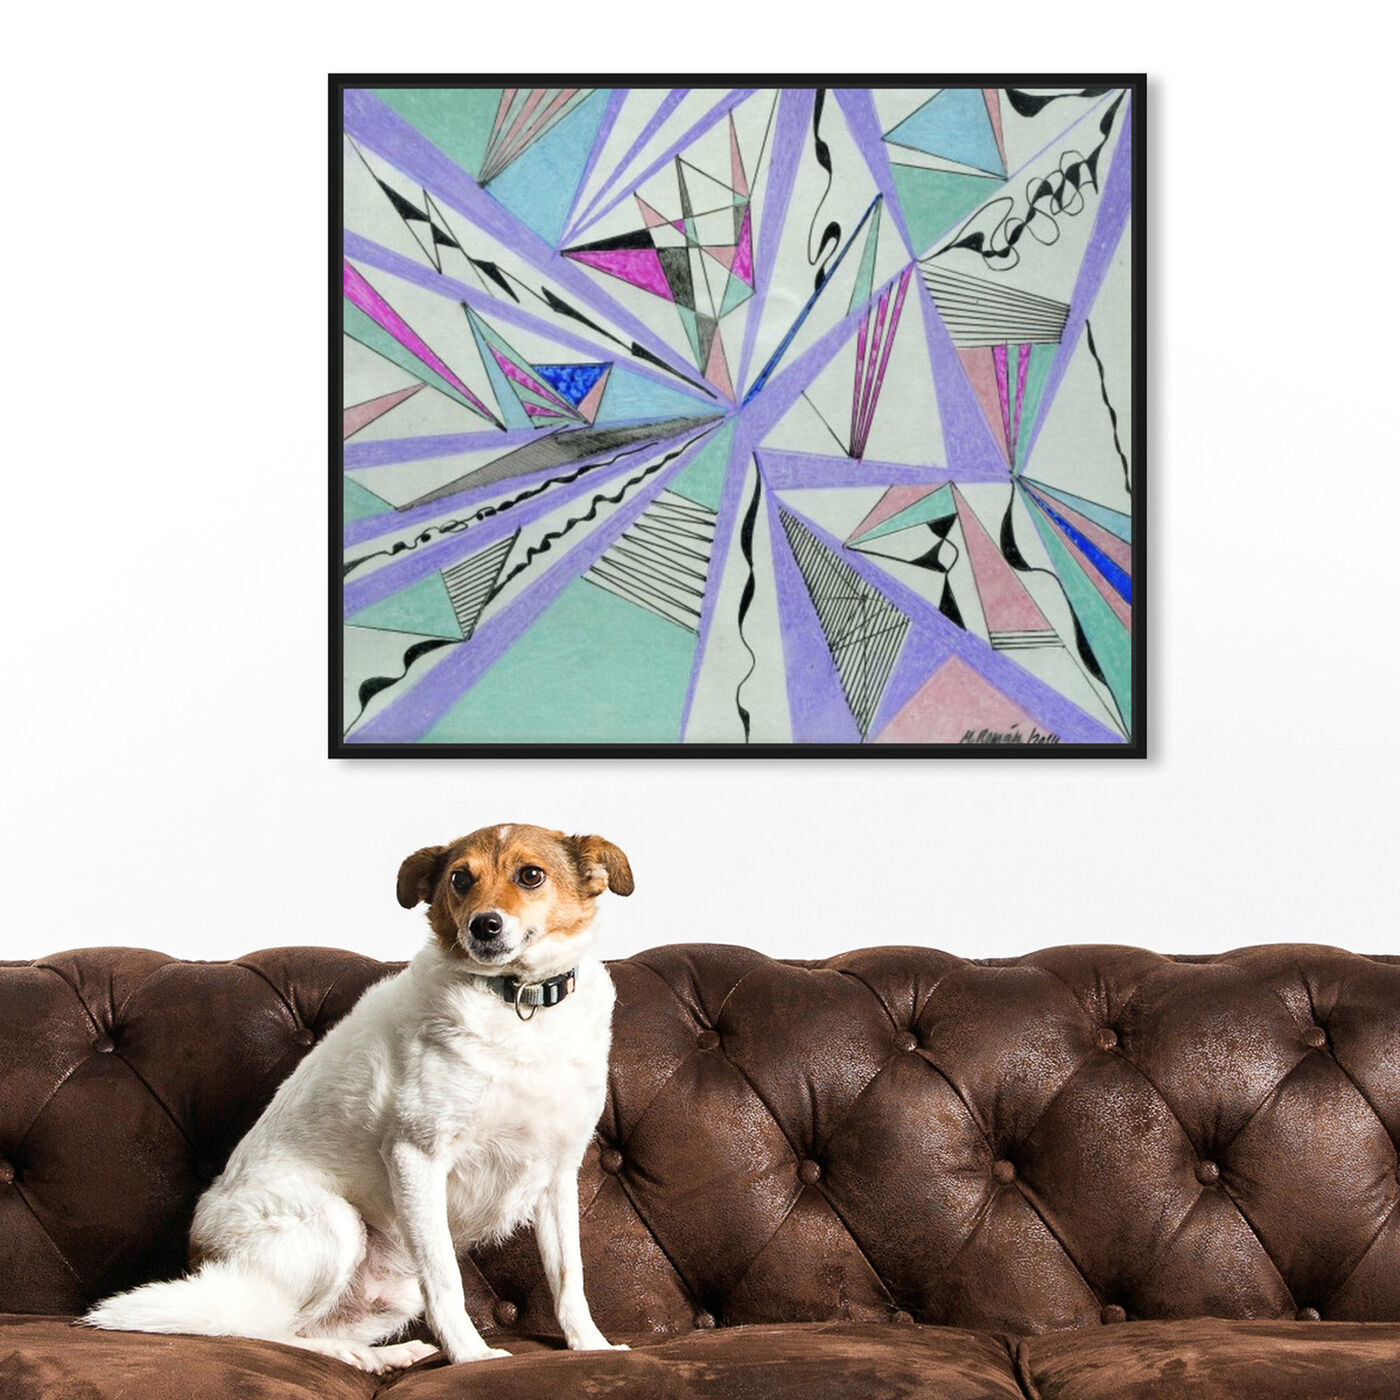 Hanging view of Musica featuring abstract and geometric art.